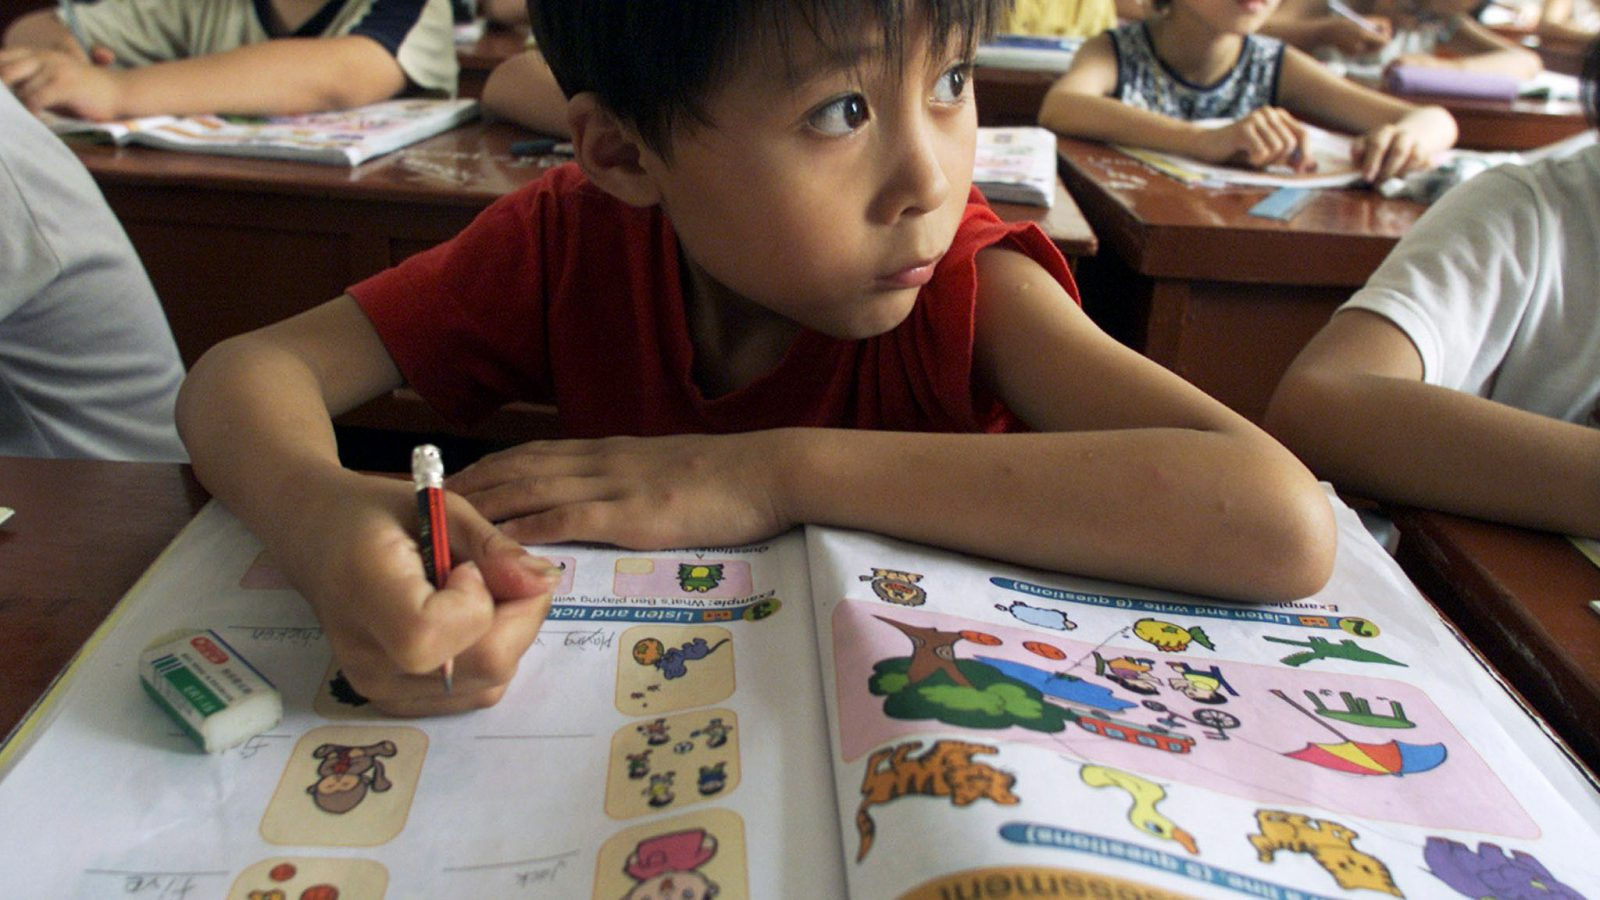 - PHOTO TAKEN 12JUL02 - Nine-year-old Chinese pupil, Sun Minyi, listens to his teacher during a special English class at Chongming county, north of Shanghai July 12, 2002. Learning English has become increasingly popular among Chinese after China progressively opens up to the outside world. More grade school pupils, college students, professionals and even taxi drivers are now studying the language.  Pictures taken July 12, 2002. - RTXLELE